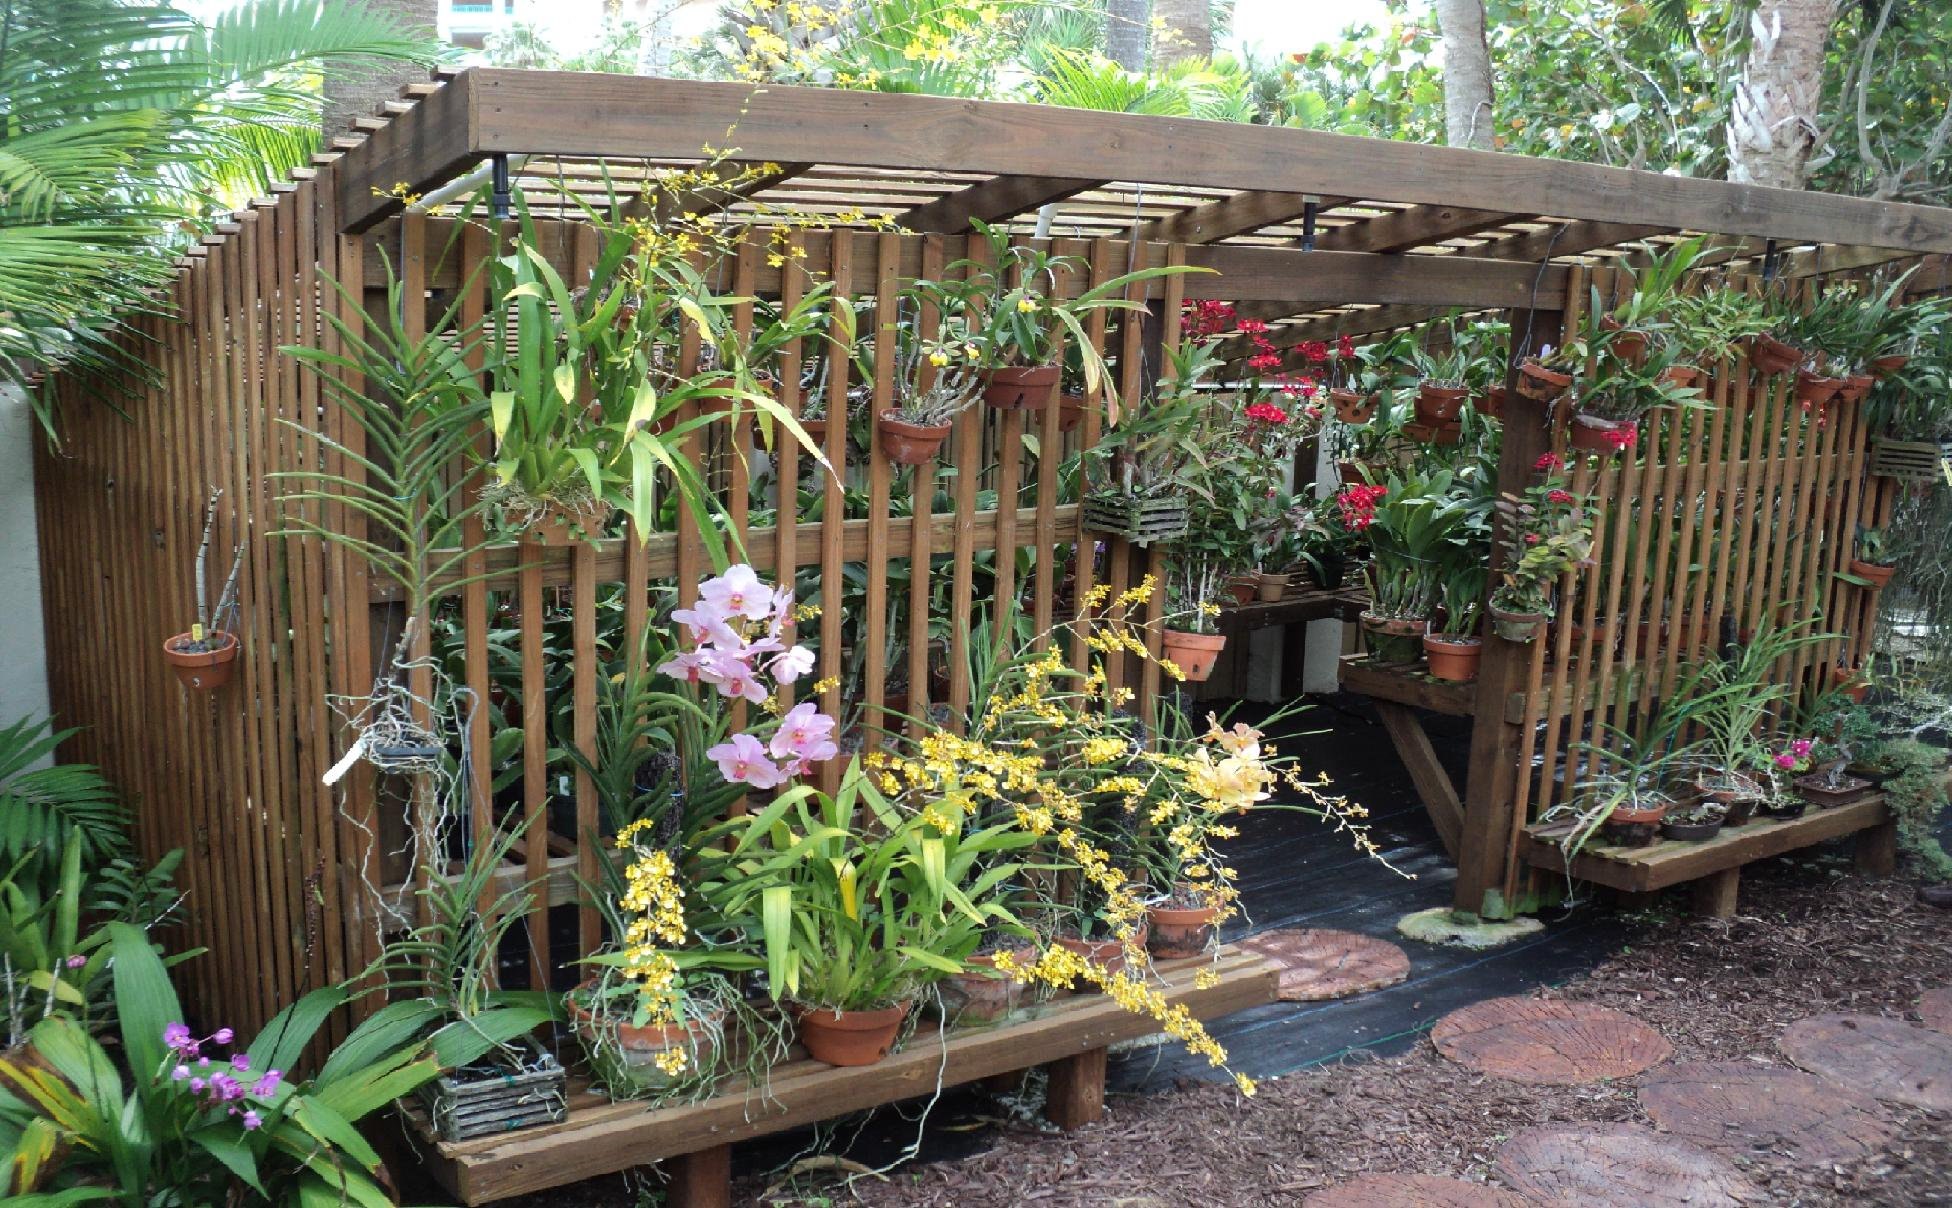 How To Build An Orchid Lath House